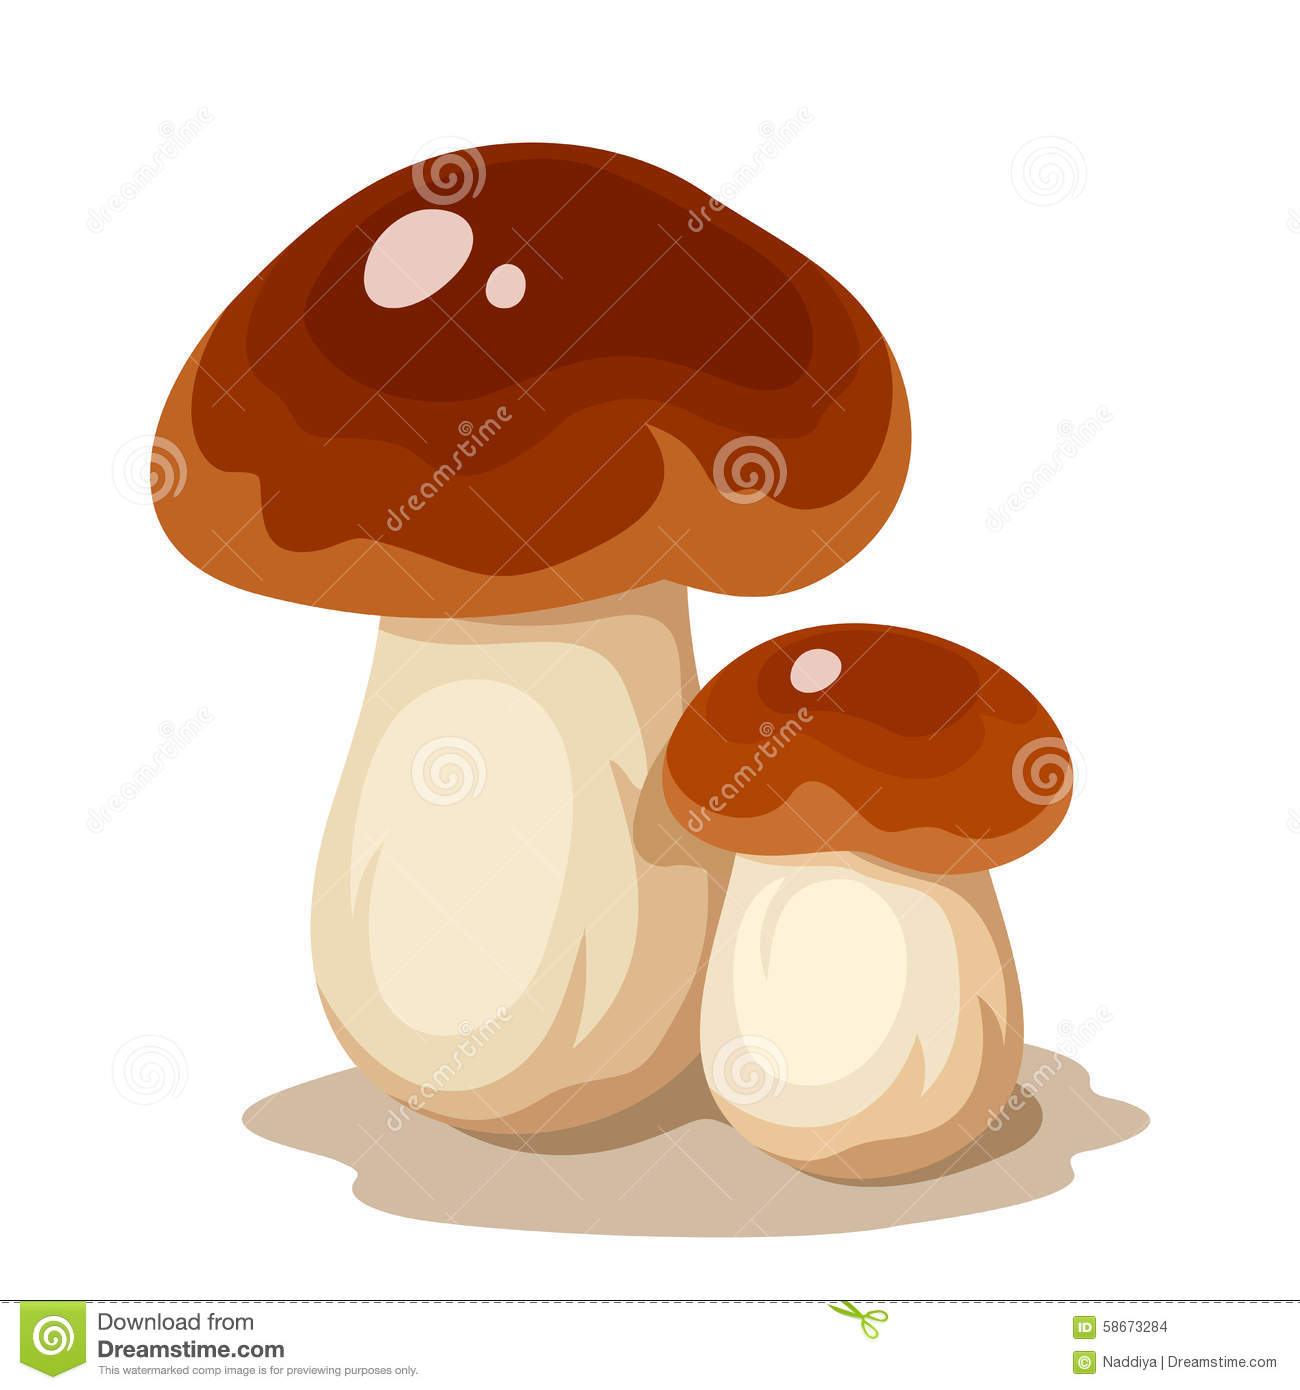 Two Cep Mushrooms. Vector Illustration. Stock Vector.